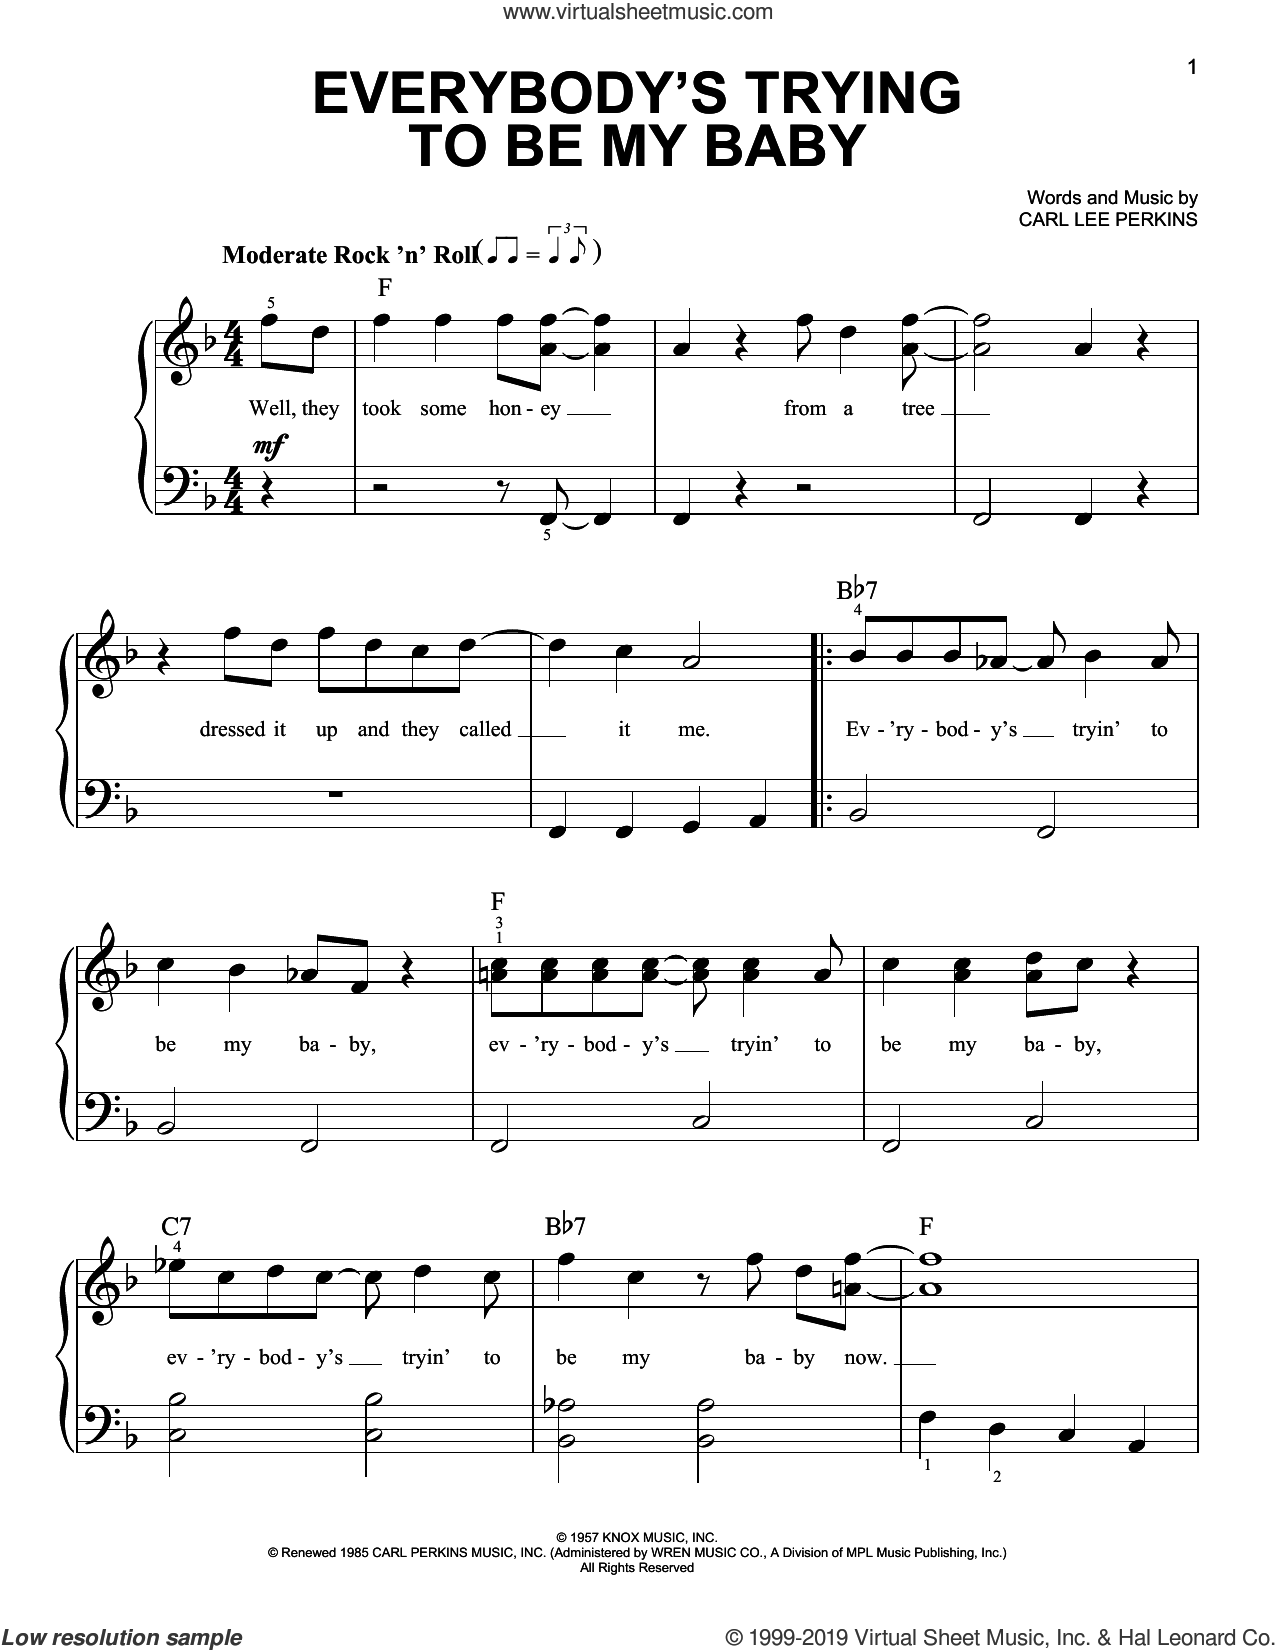 Everybody's Trying To Be My Baby sheet music for piano solo by The Beatles and Carl Perkins, easy skill level